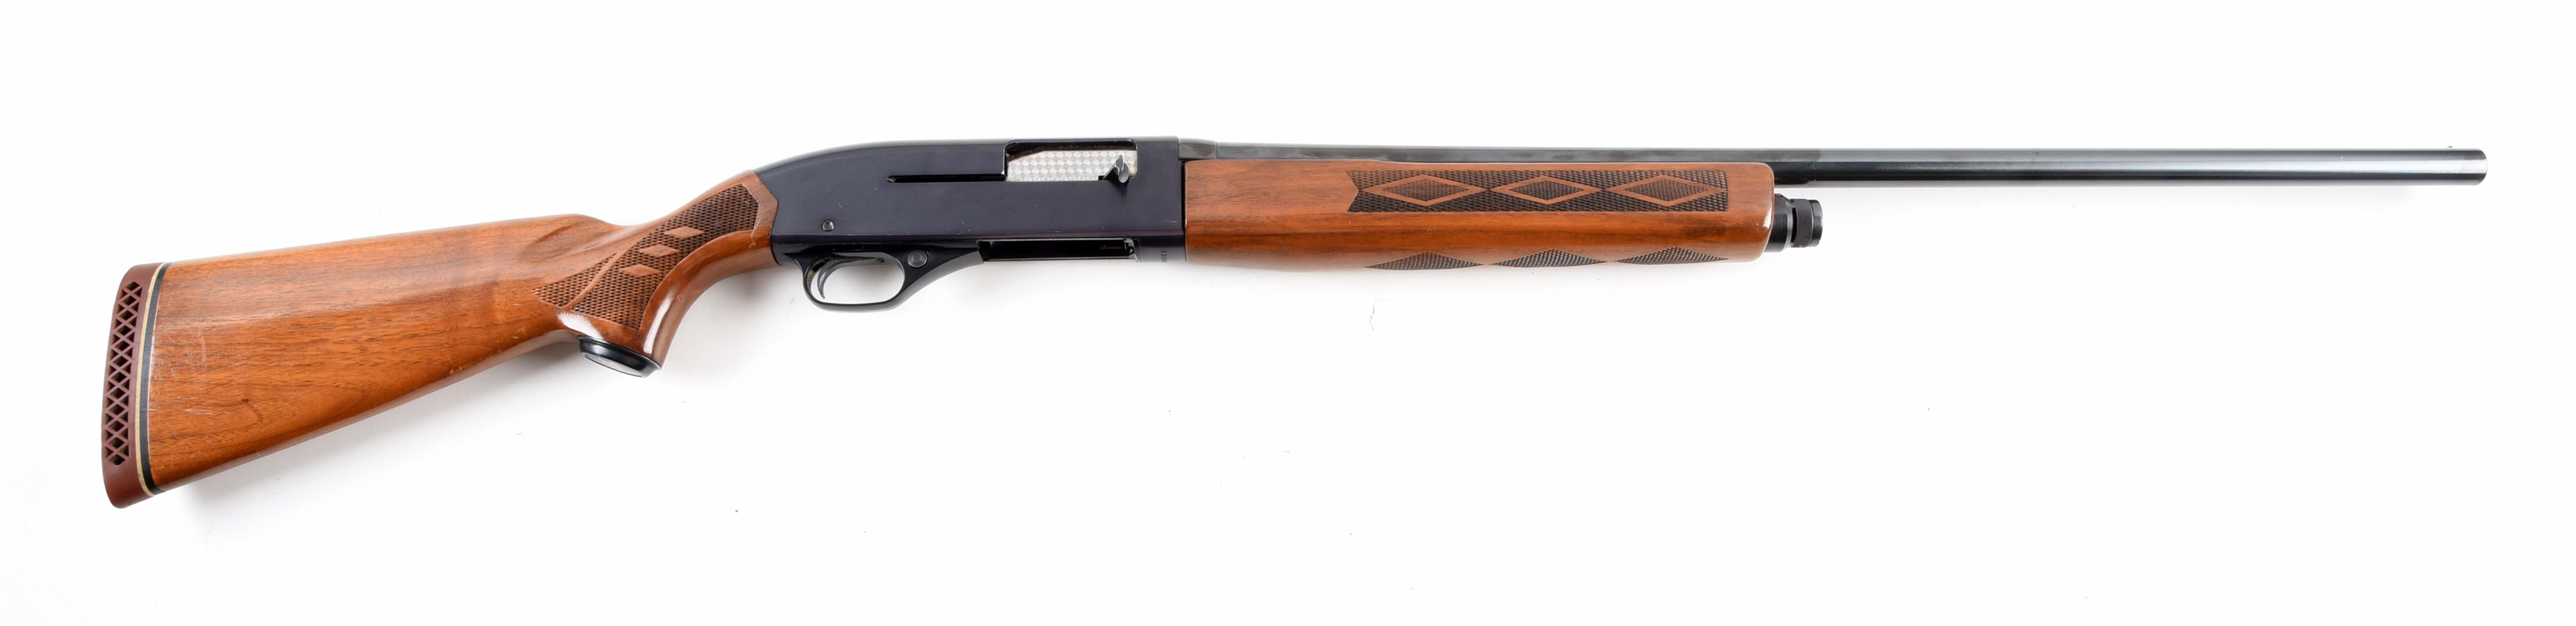 (M) WINCHESTER MODEL 1400 SEMI-AUTOMATIC 16 GA SHOTGUN.